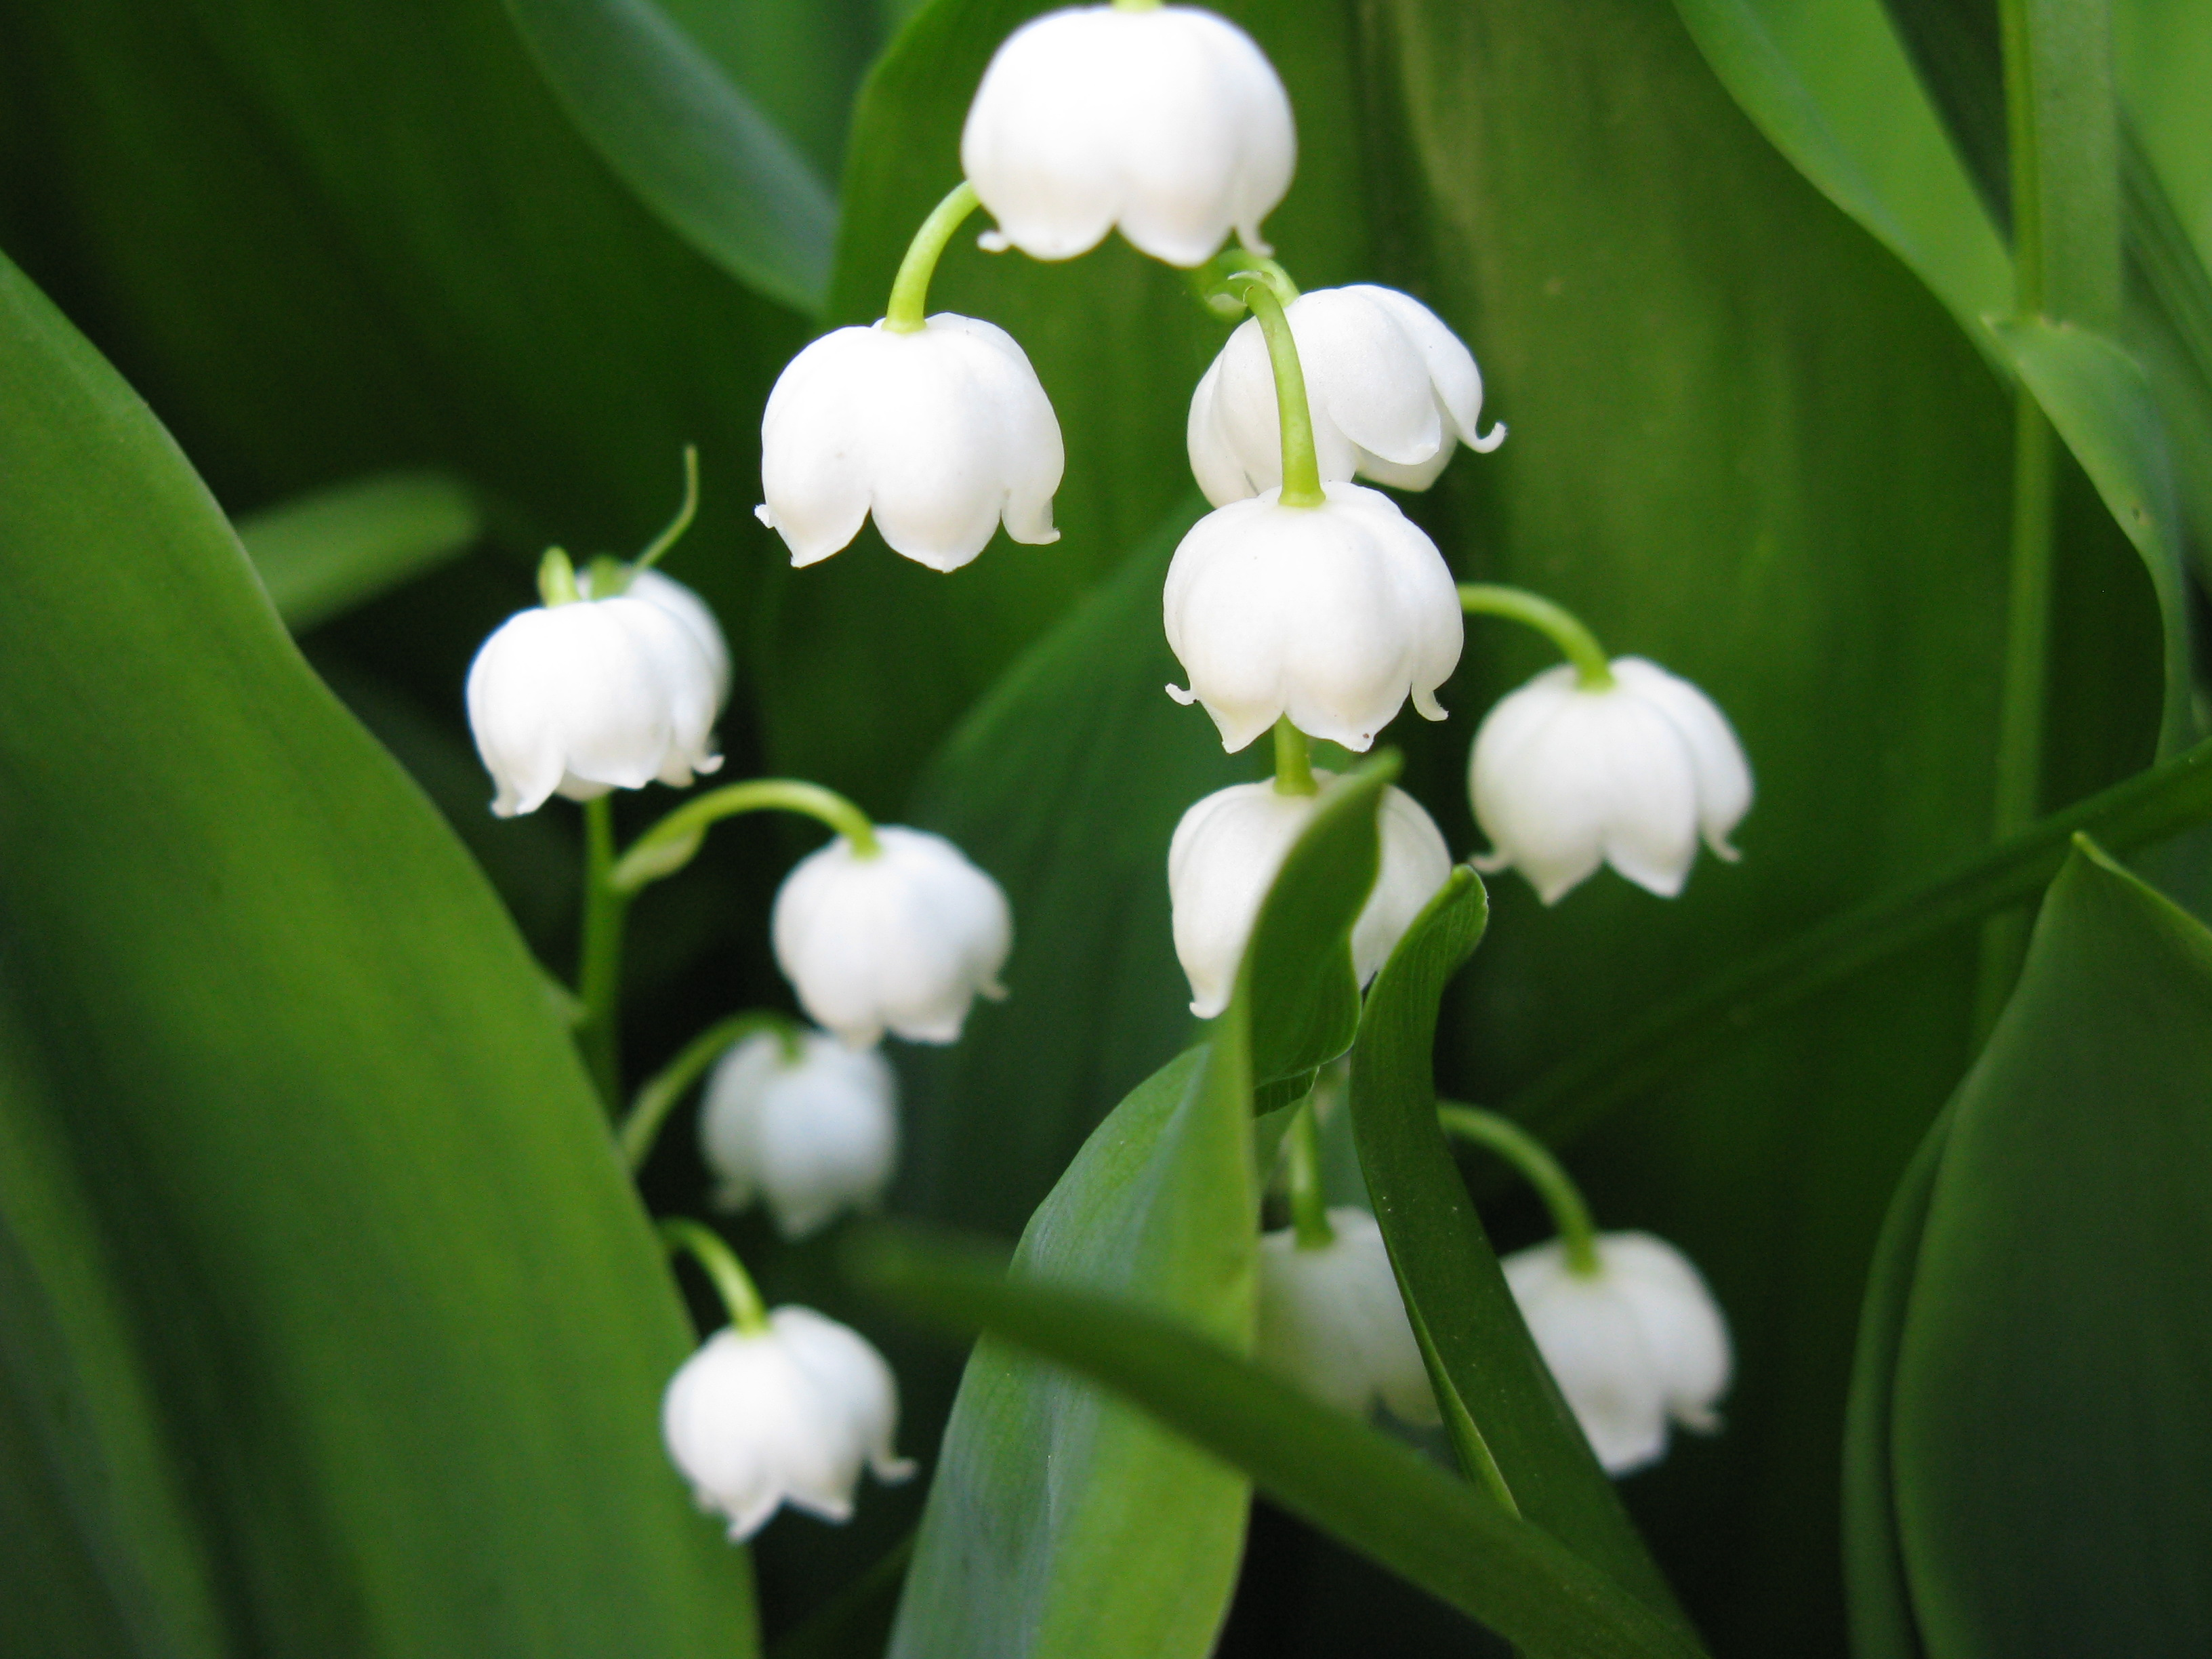 lily of the valley wallpapers high quality download free. Black Bedroom Furniture Sets. Home Design Ideas